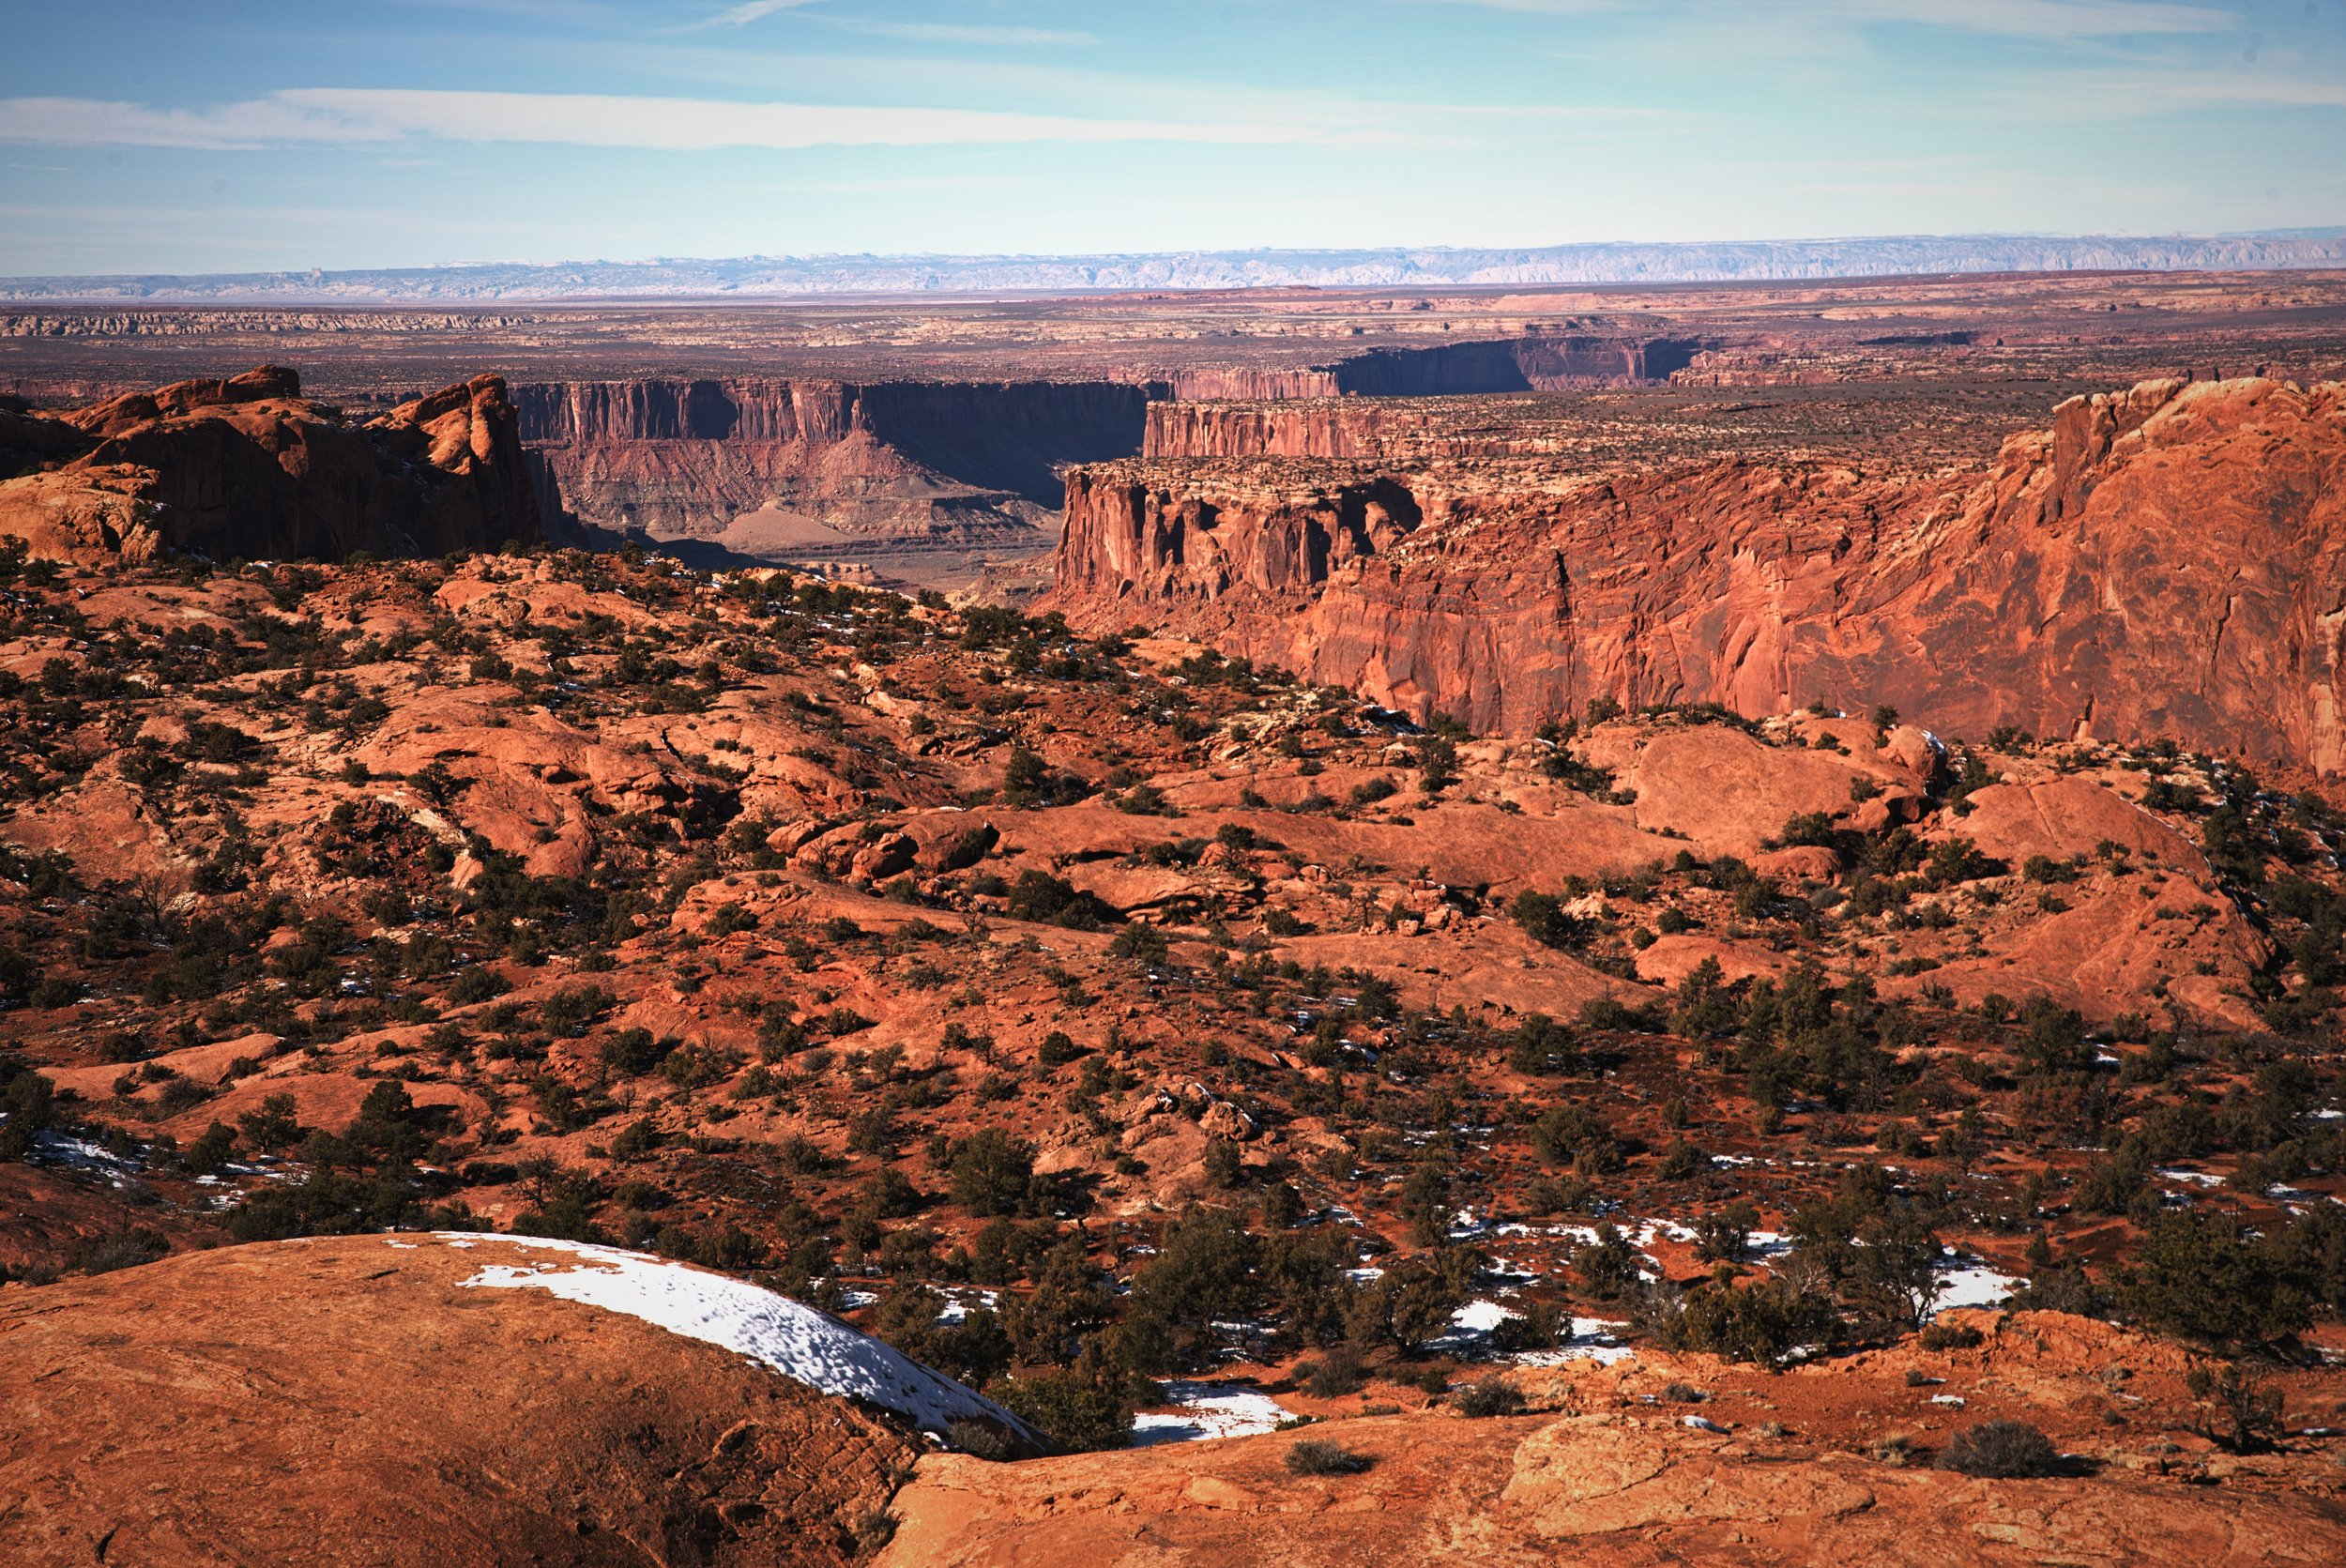 The view from the top of Whale Rock in Canyonlands National Park is incredible!